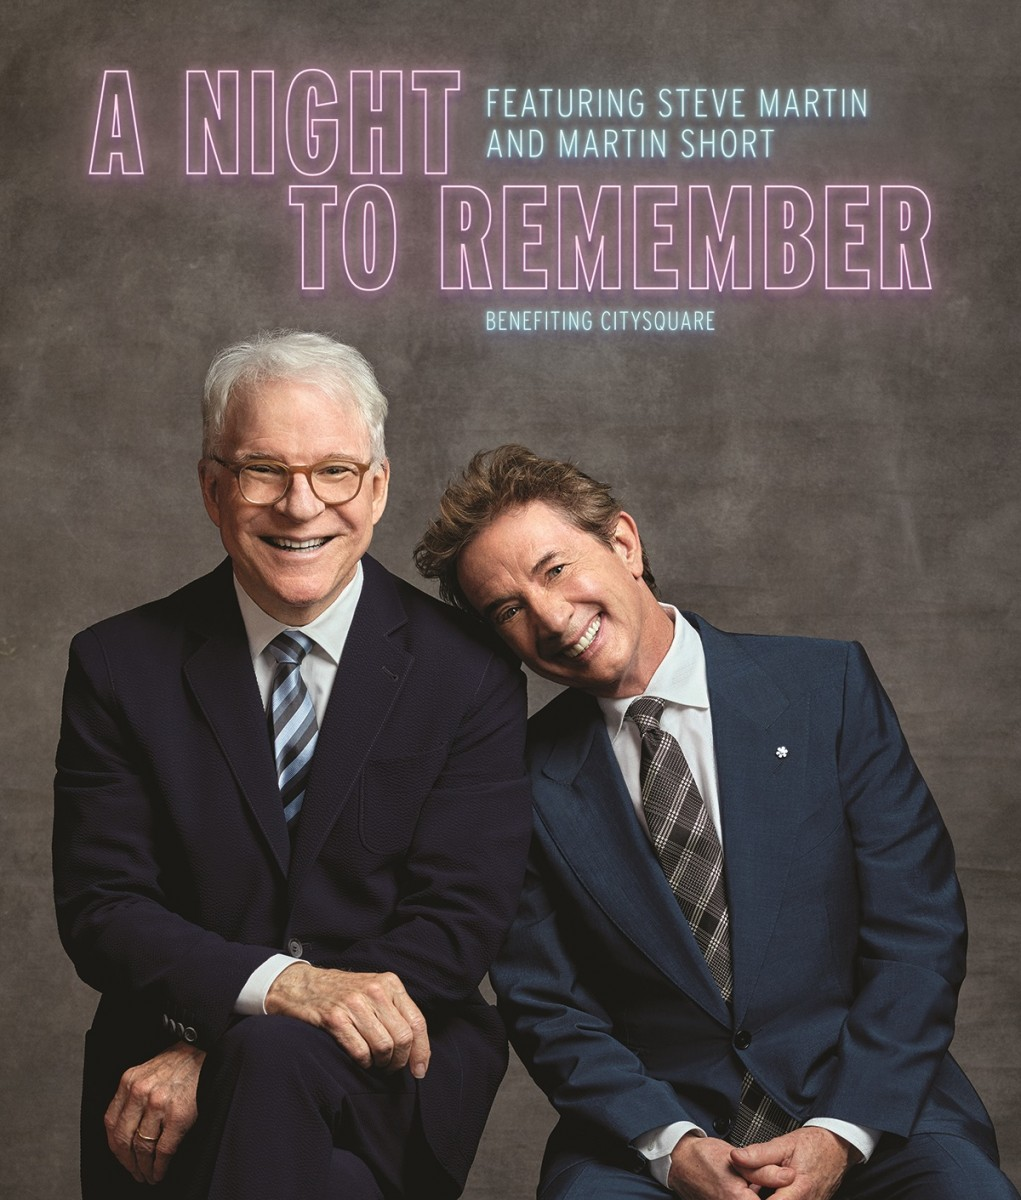 A Night to Remember featuring Steve Martin and Martin Short